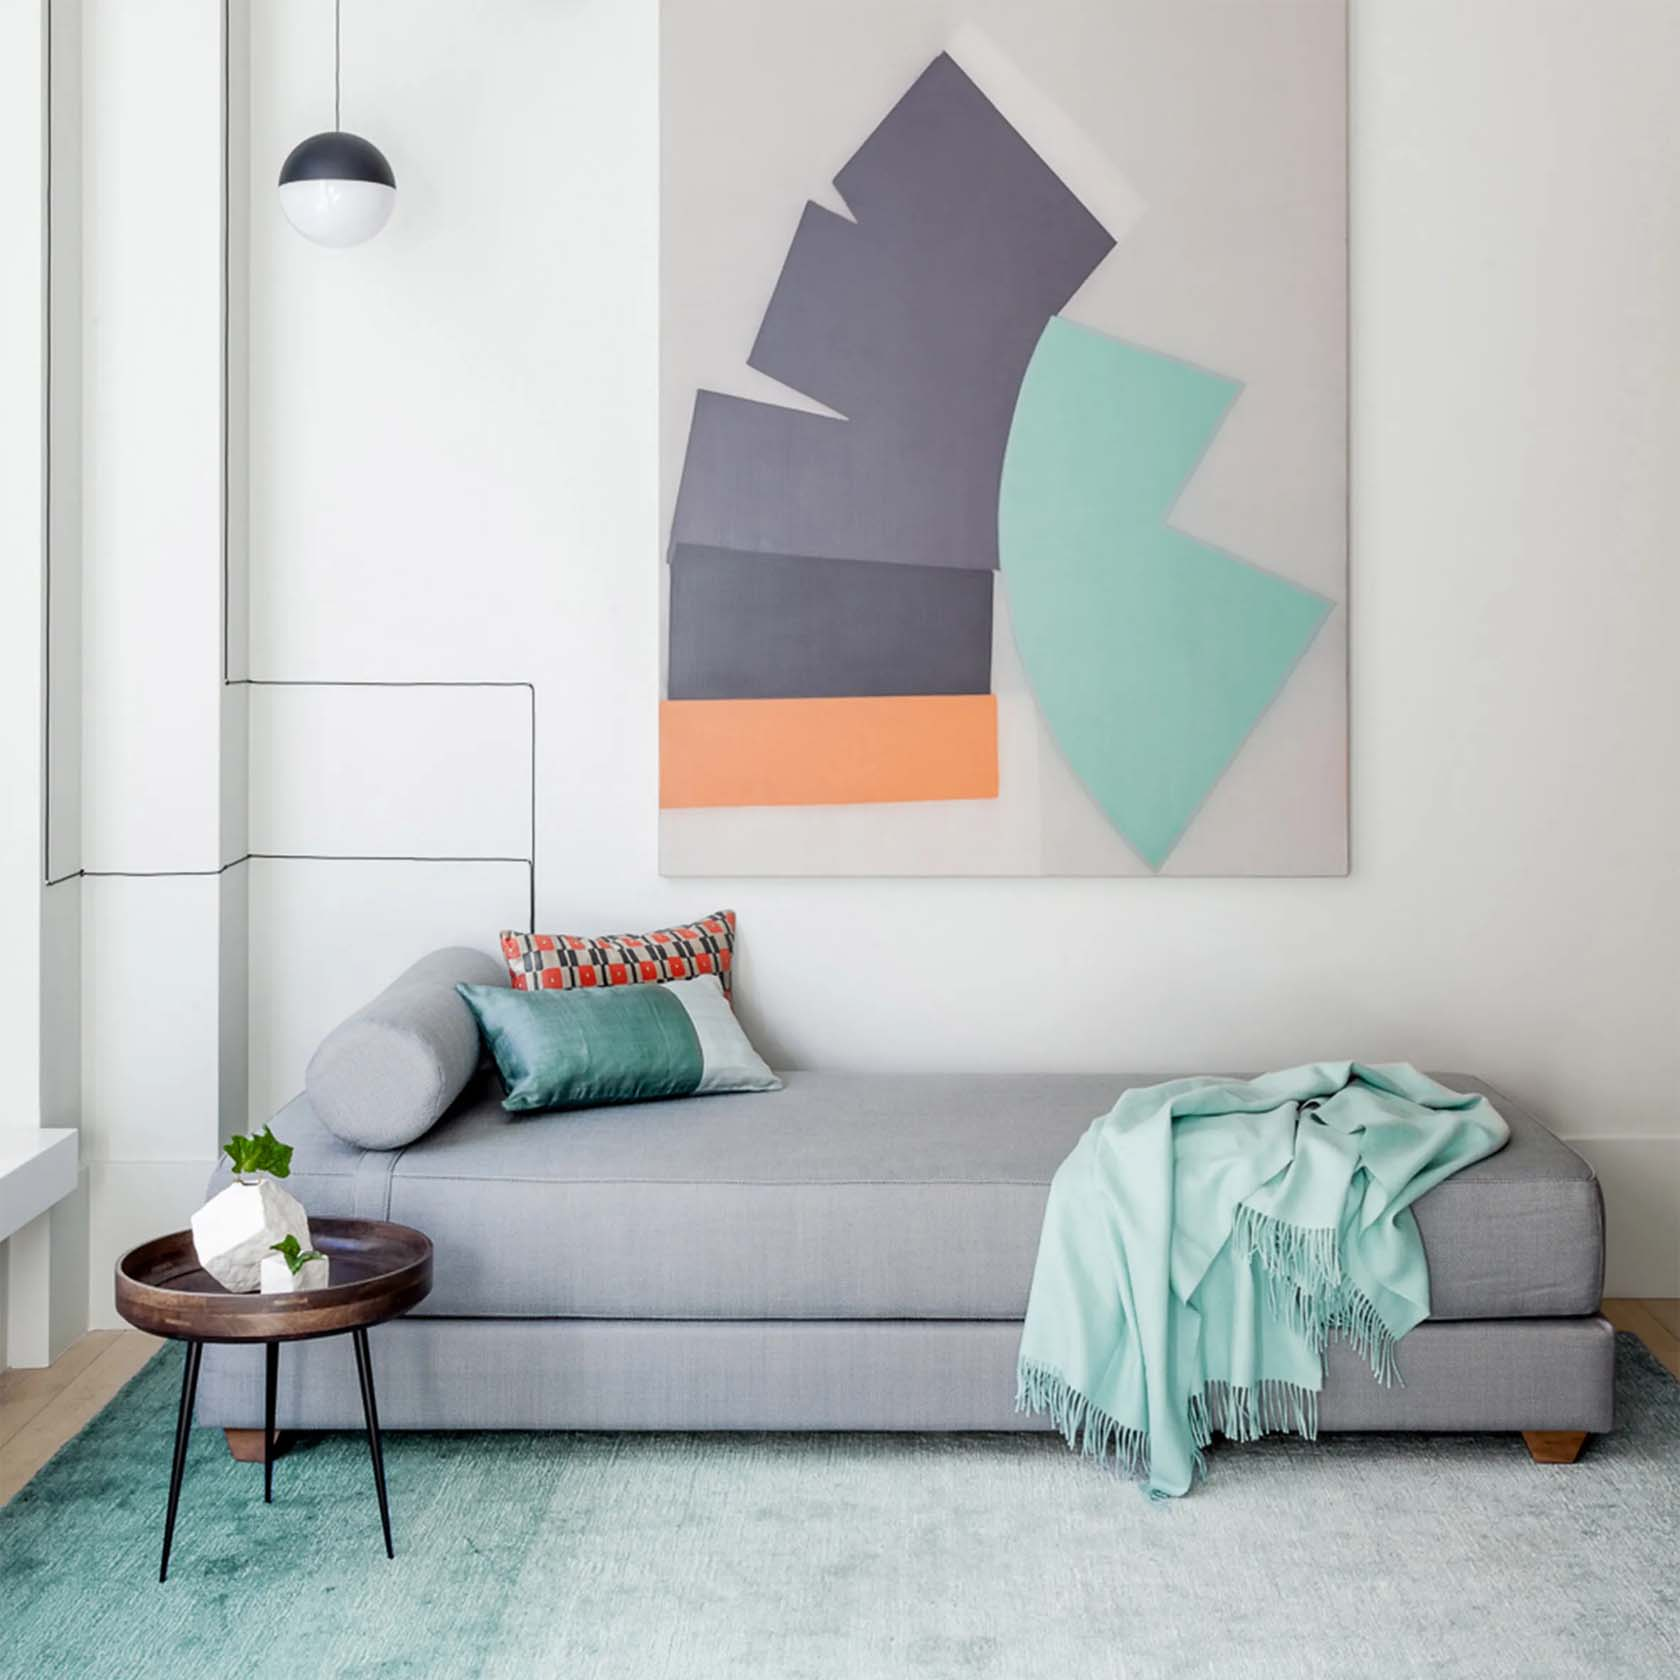 Interiors With Pastel Shades